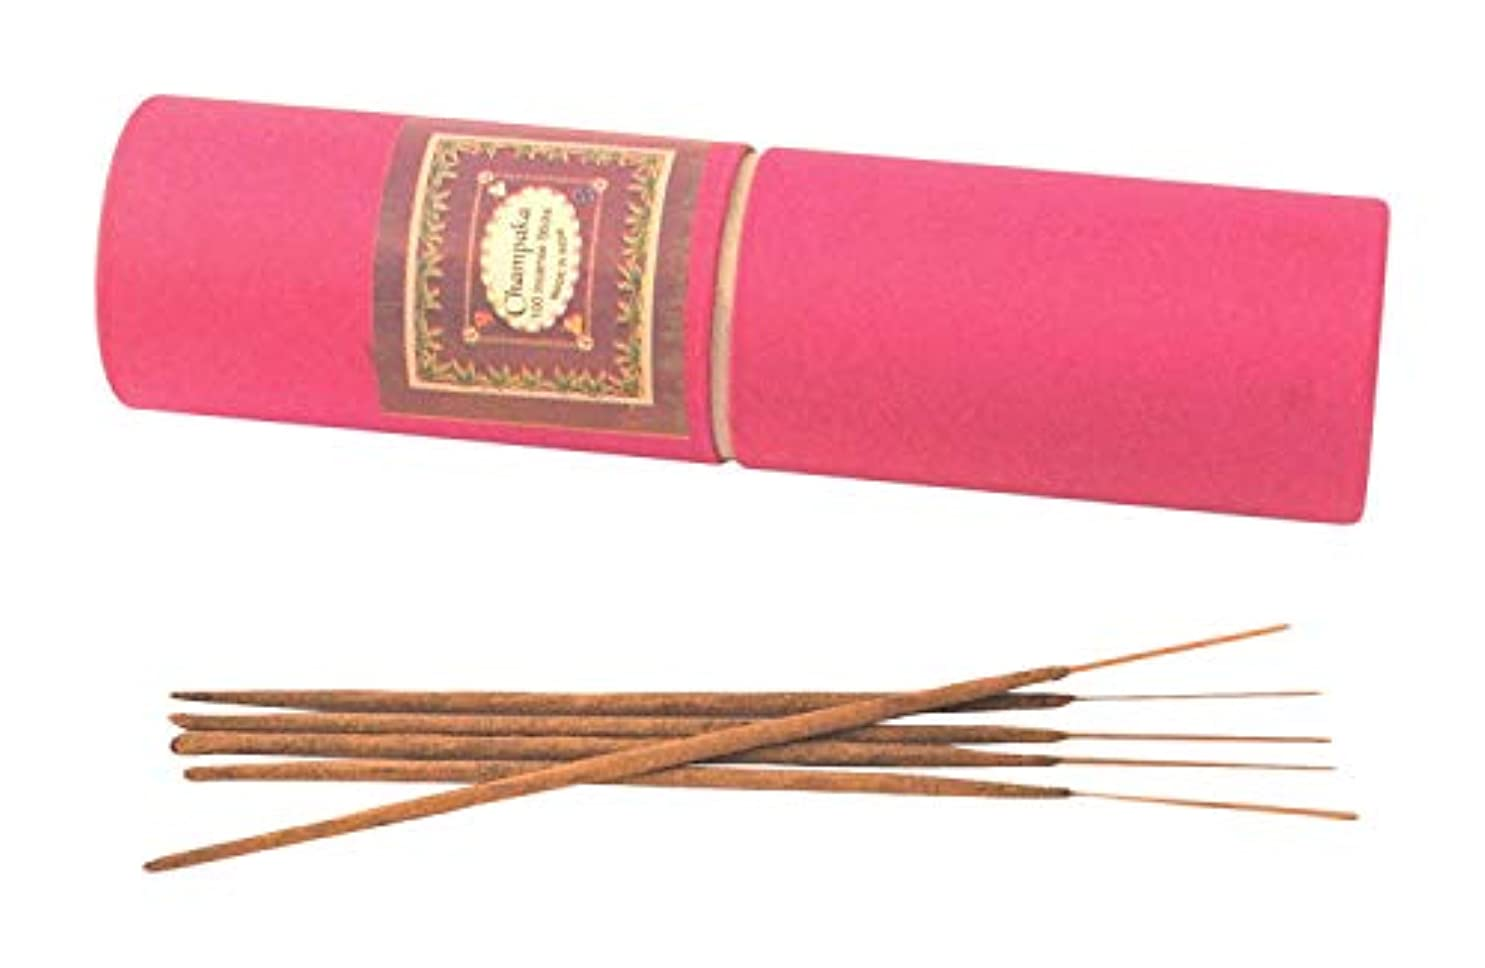 刺繍誤解を招くエスカレーターMy Earth Store Champaka Hand Made Incense Stick (4 cm x 4 cm x 24 cm, Brown)